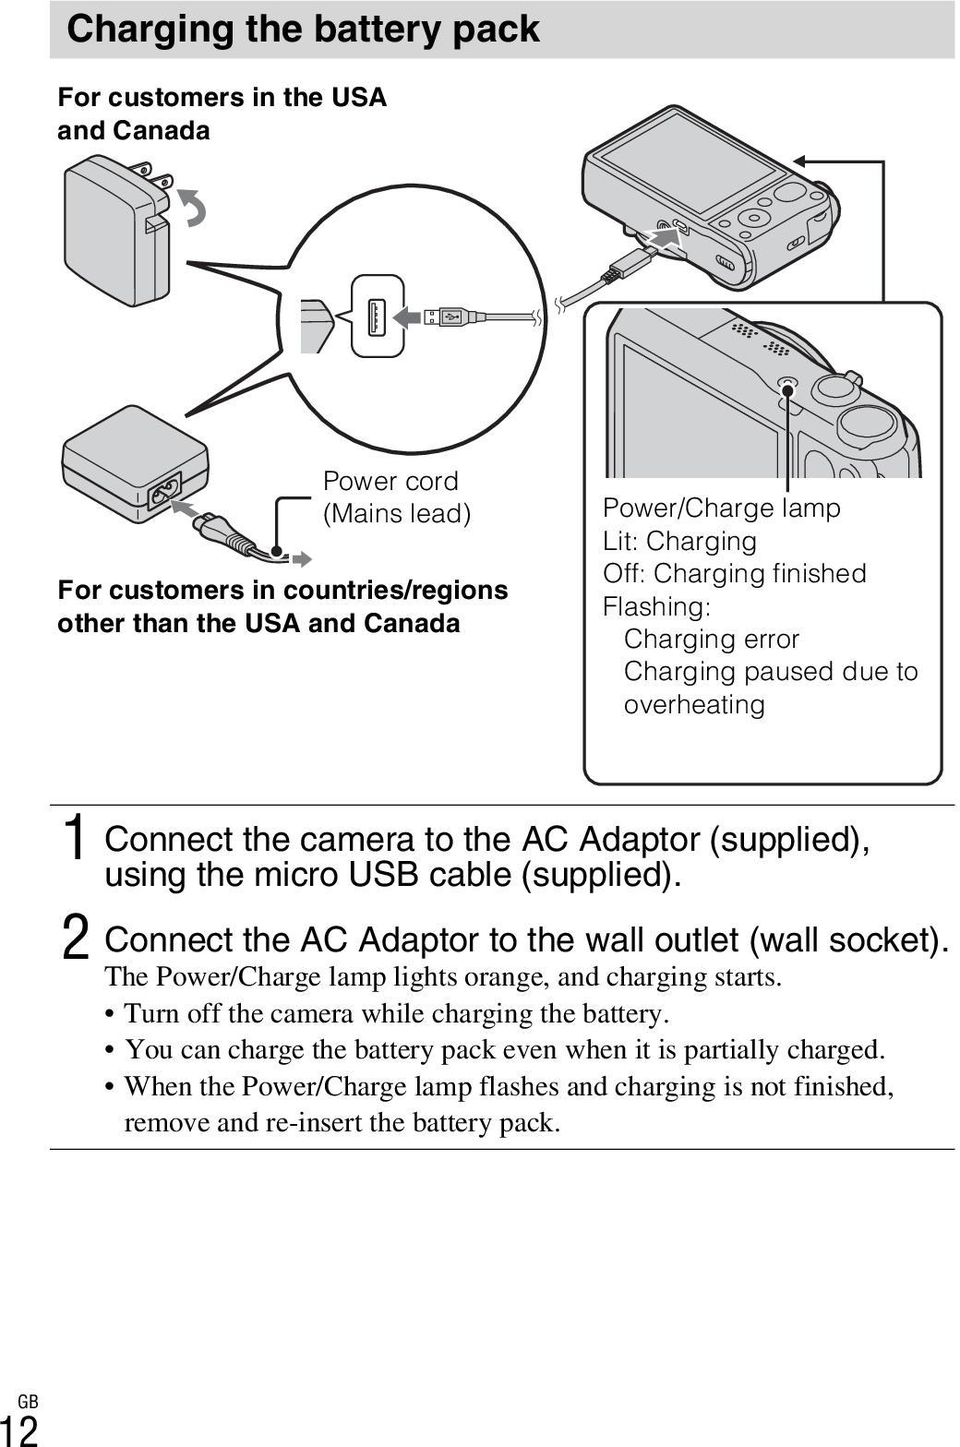 (supplied). 2 Connect the AC Adaptor to the wall outlet (wall socket). The Power/Charge lamp lights orange, and charging starts.